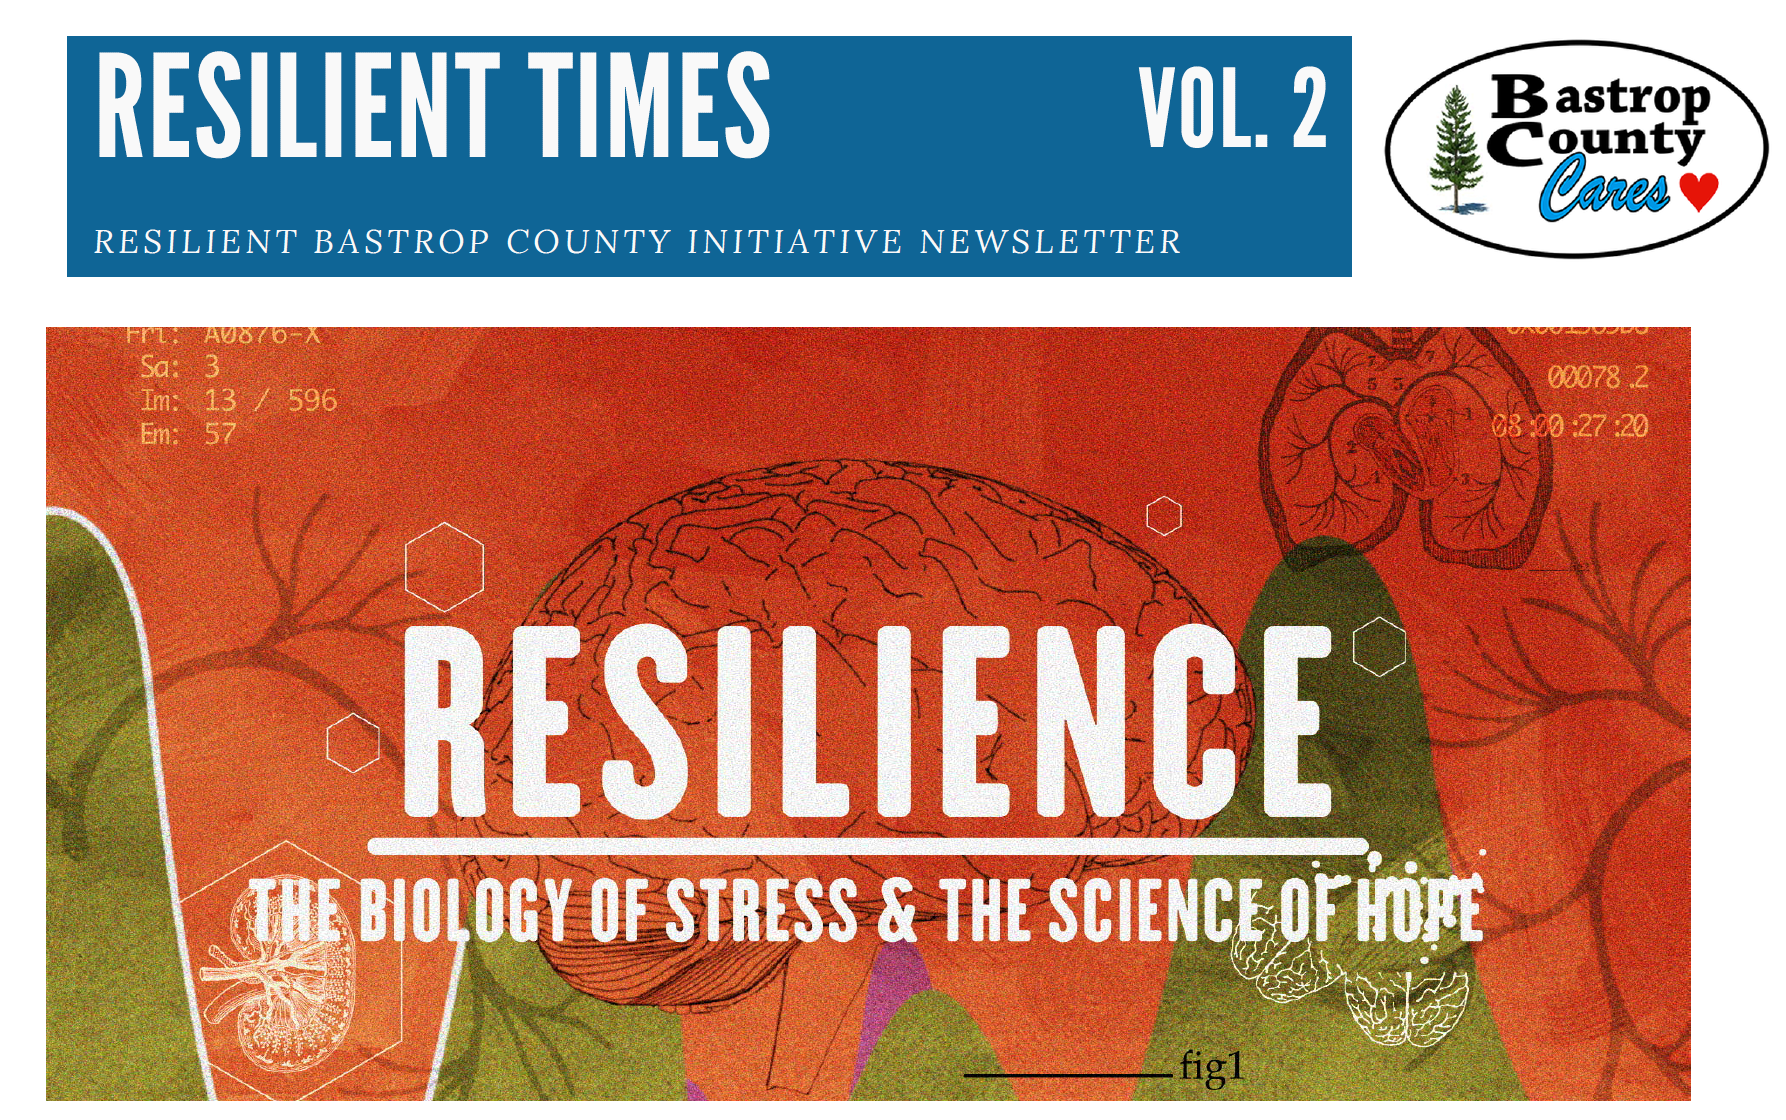 Resilient Times vol 2